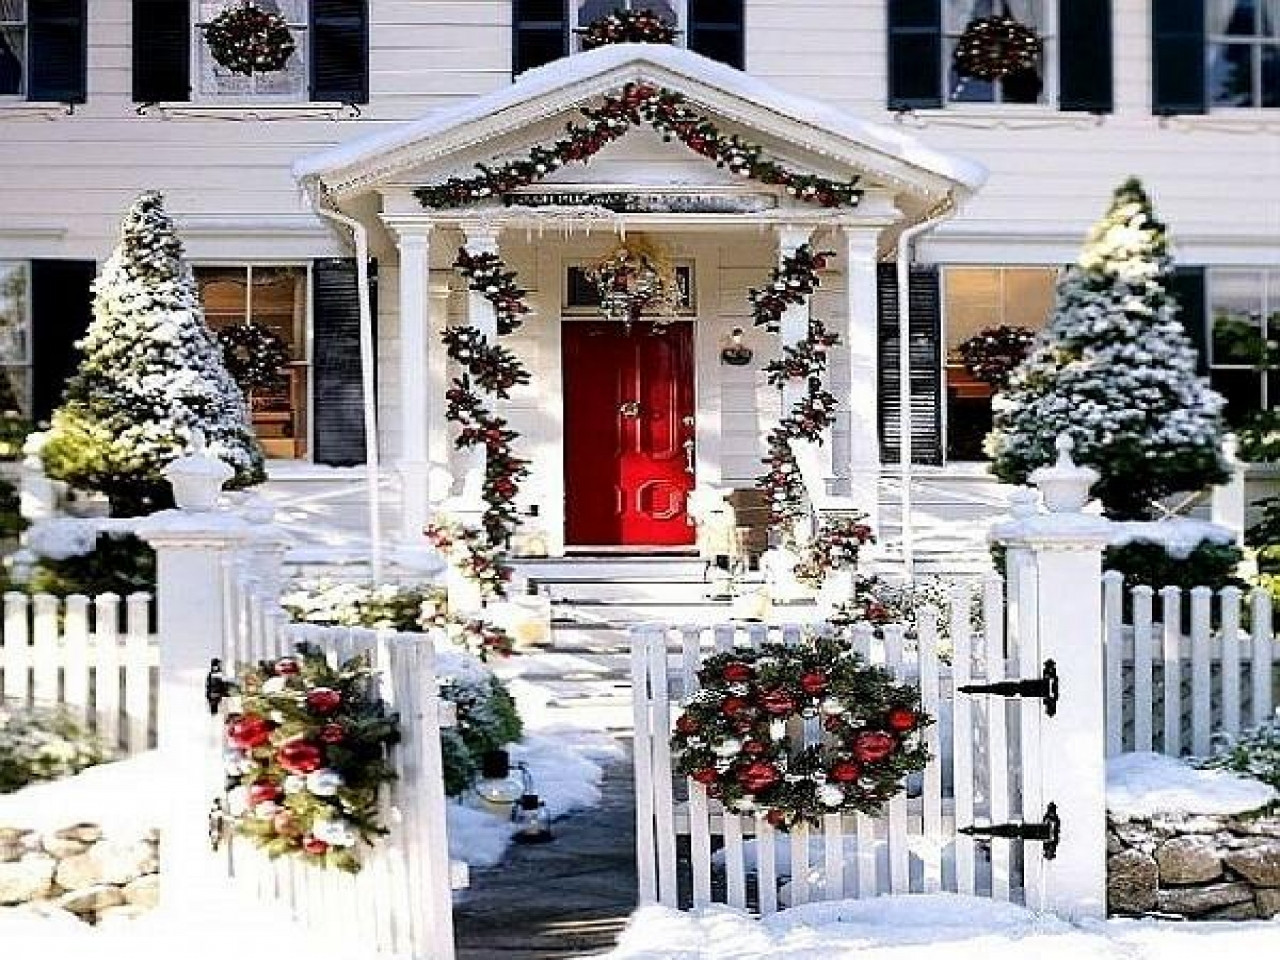 Outdoor Christmas Decorations On Sale  Homemade outdoor christmas decorations home outdoor